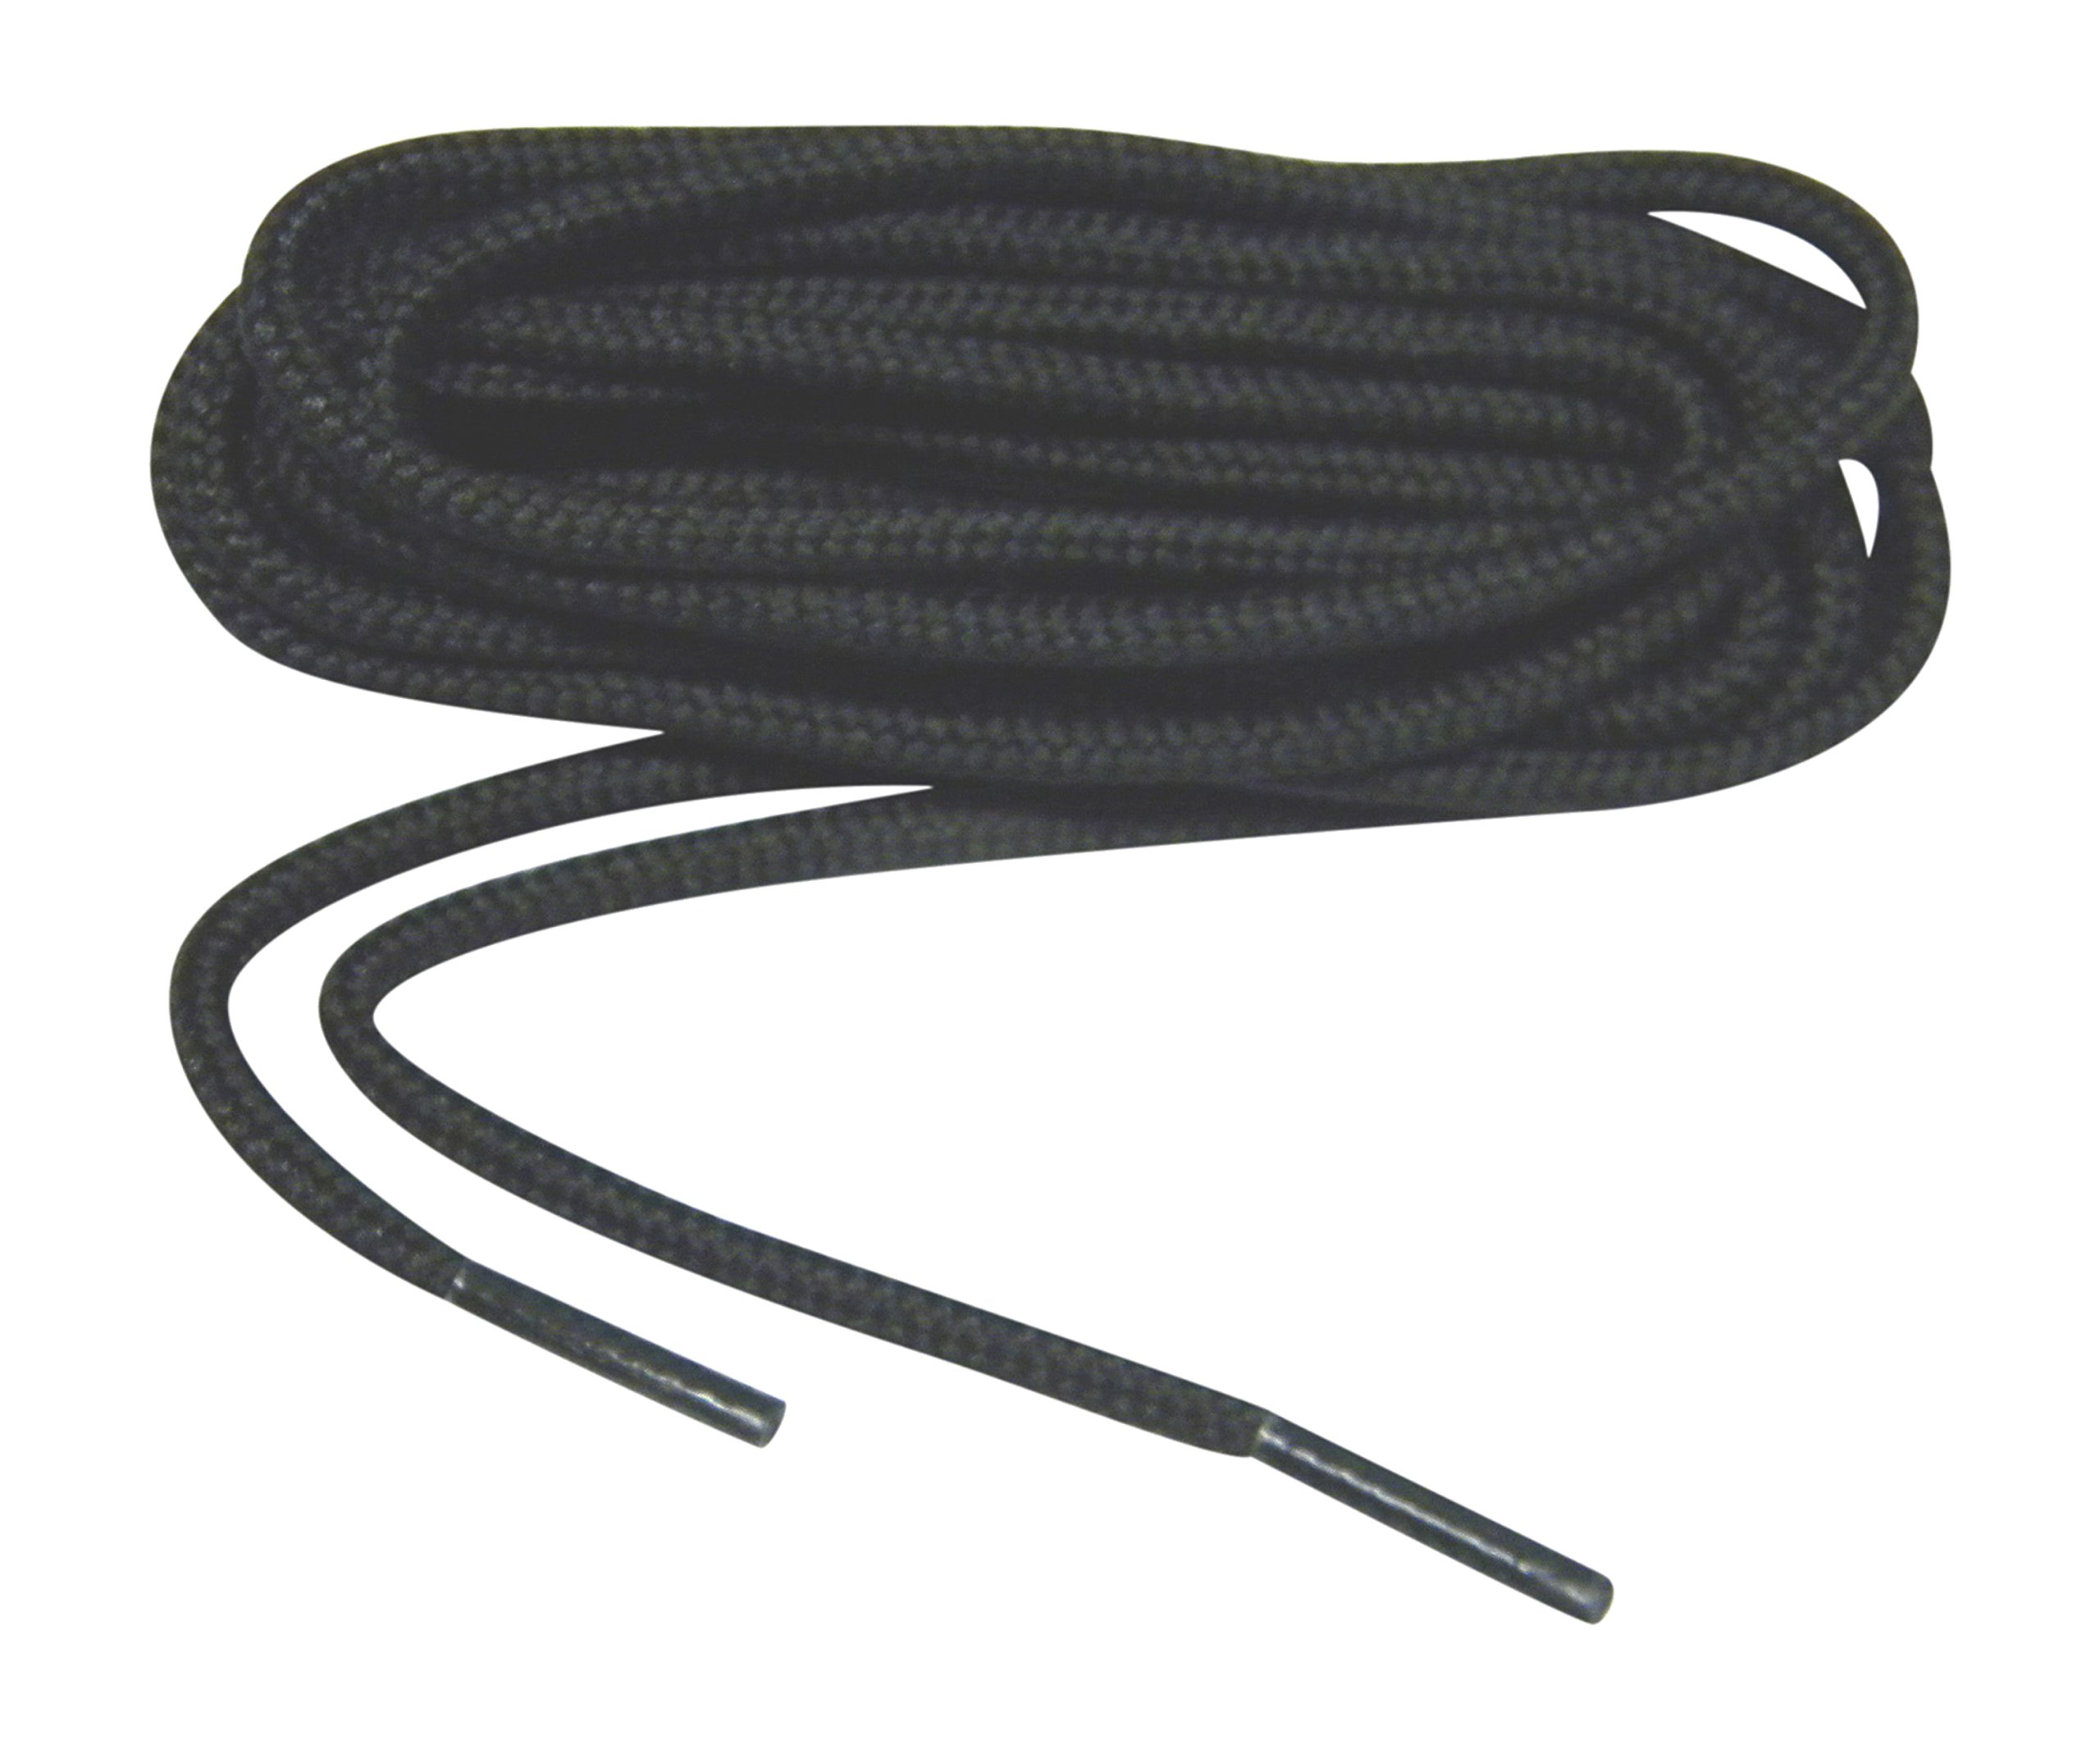 Sport28 2 Pair Pack - 84 Inch Coal Black Rugged Wear 1/8 inch 4mm Thick Heavy Duty Round Boot Laces Long Lasting Shoelaces